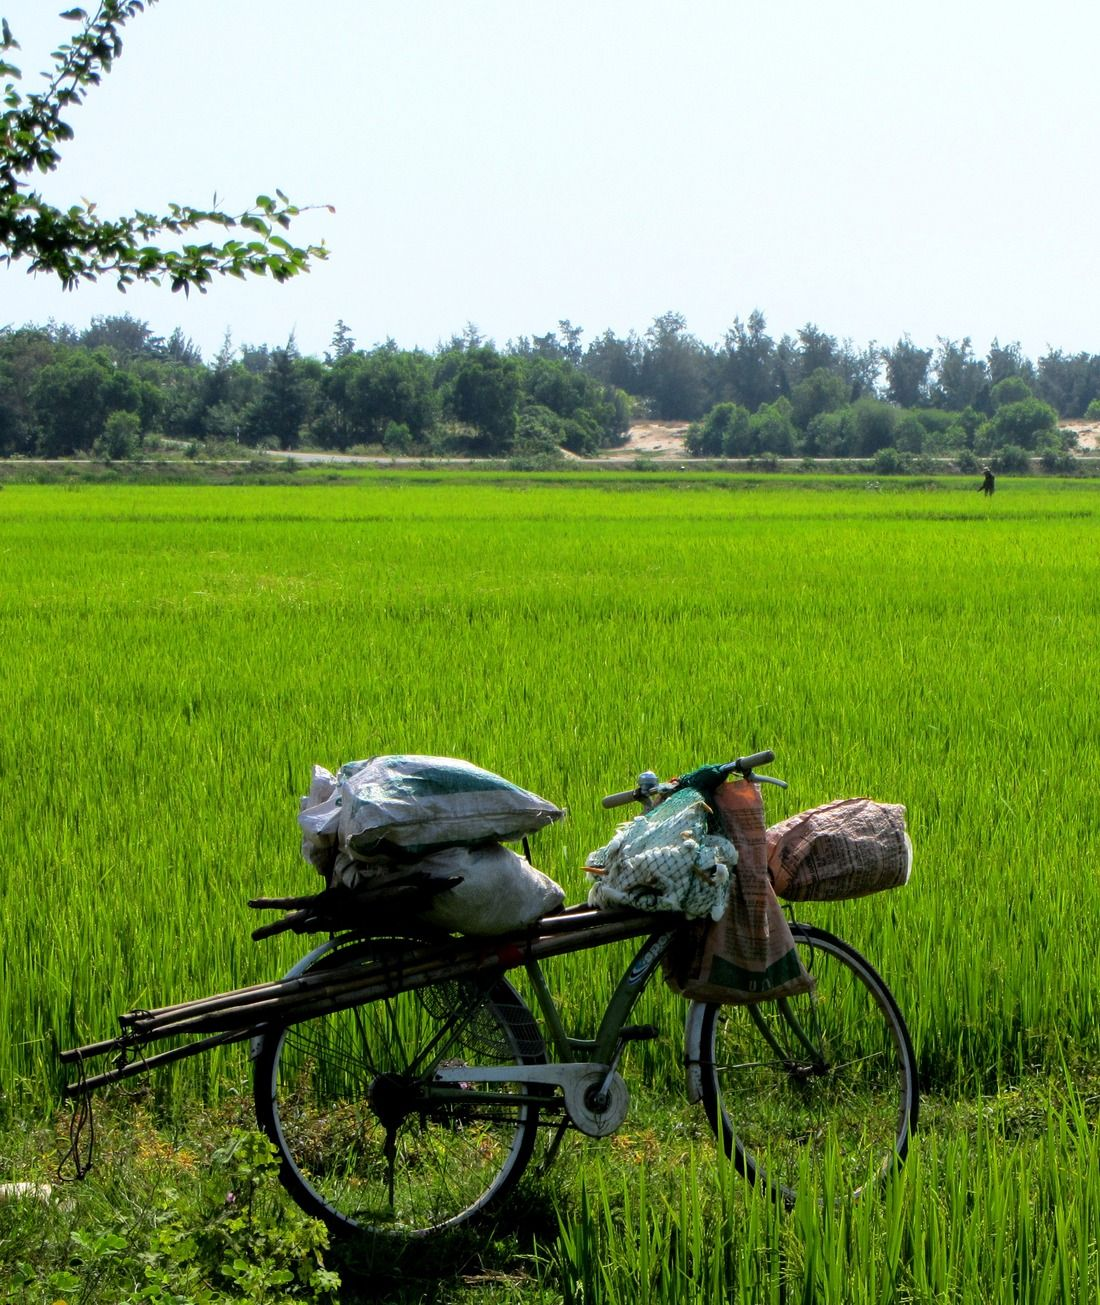 Vietnam Paddy Field  #Travel #VietNam #MekongDelta